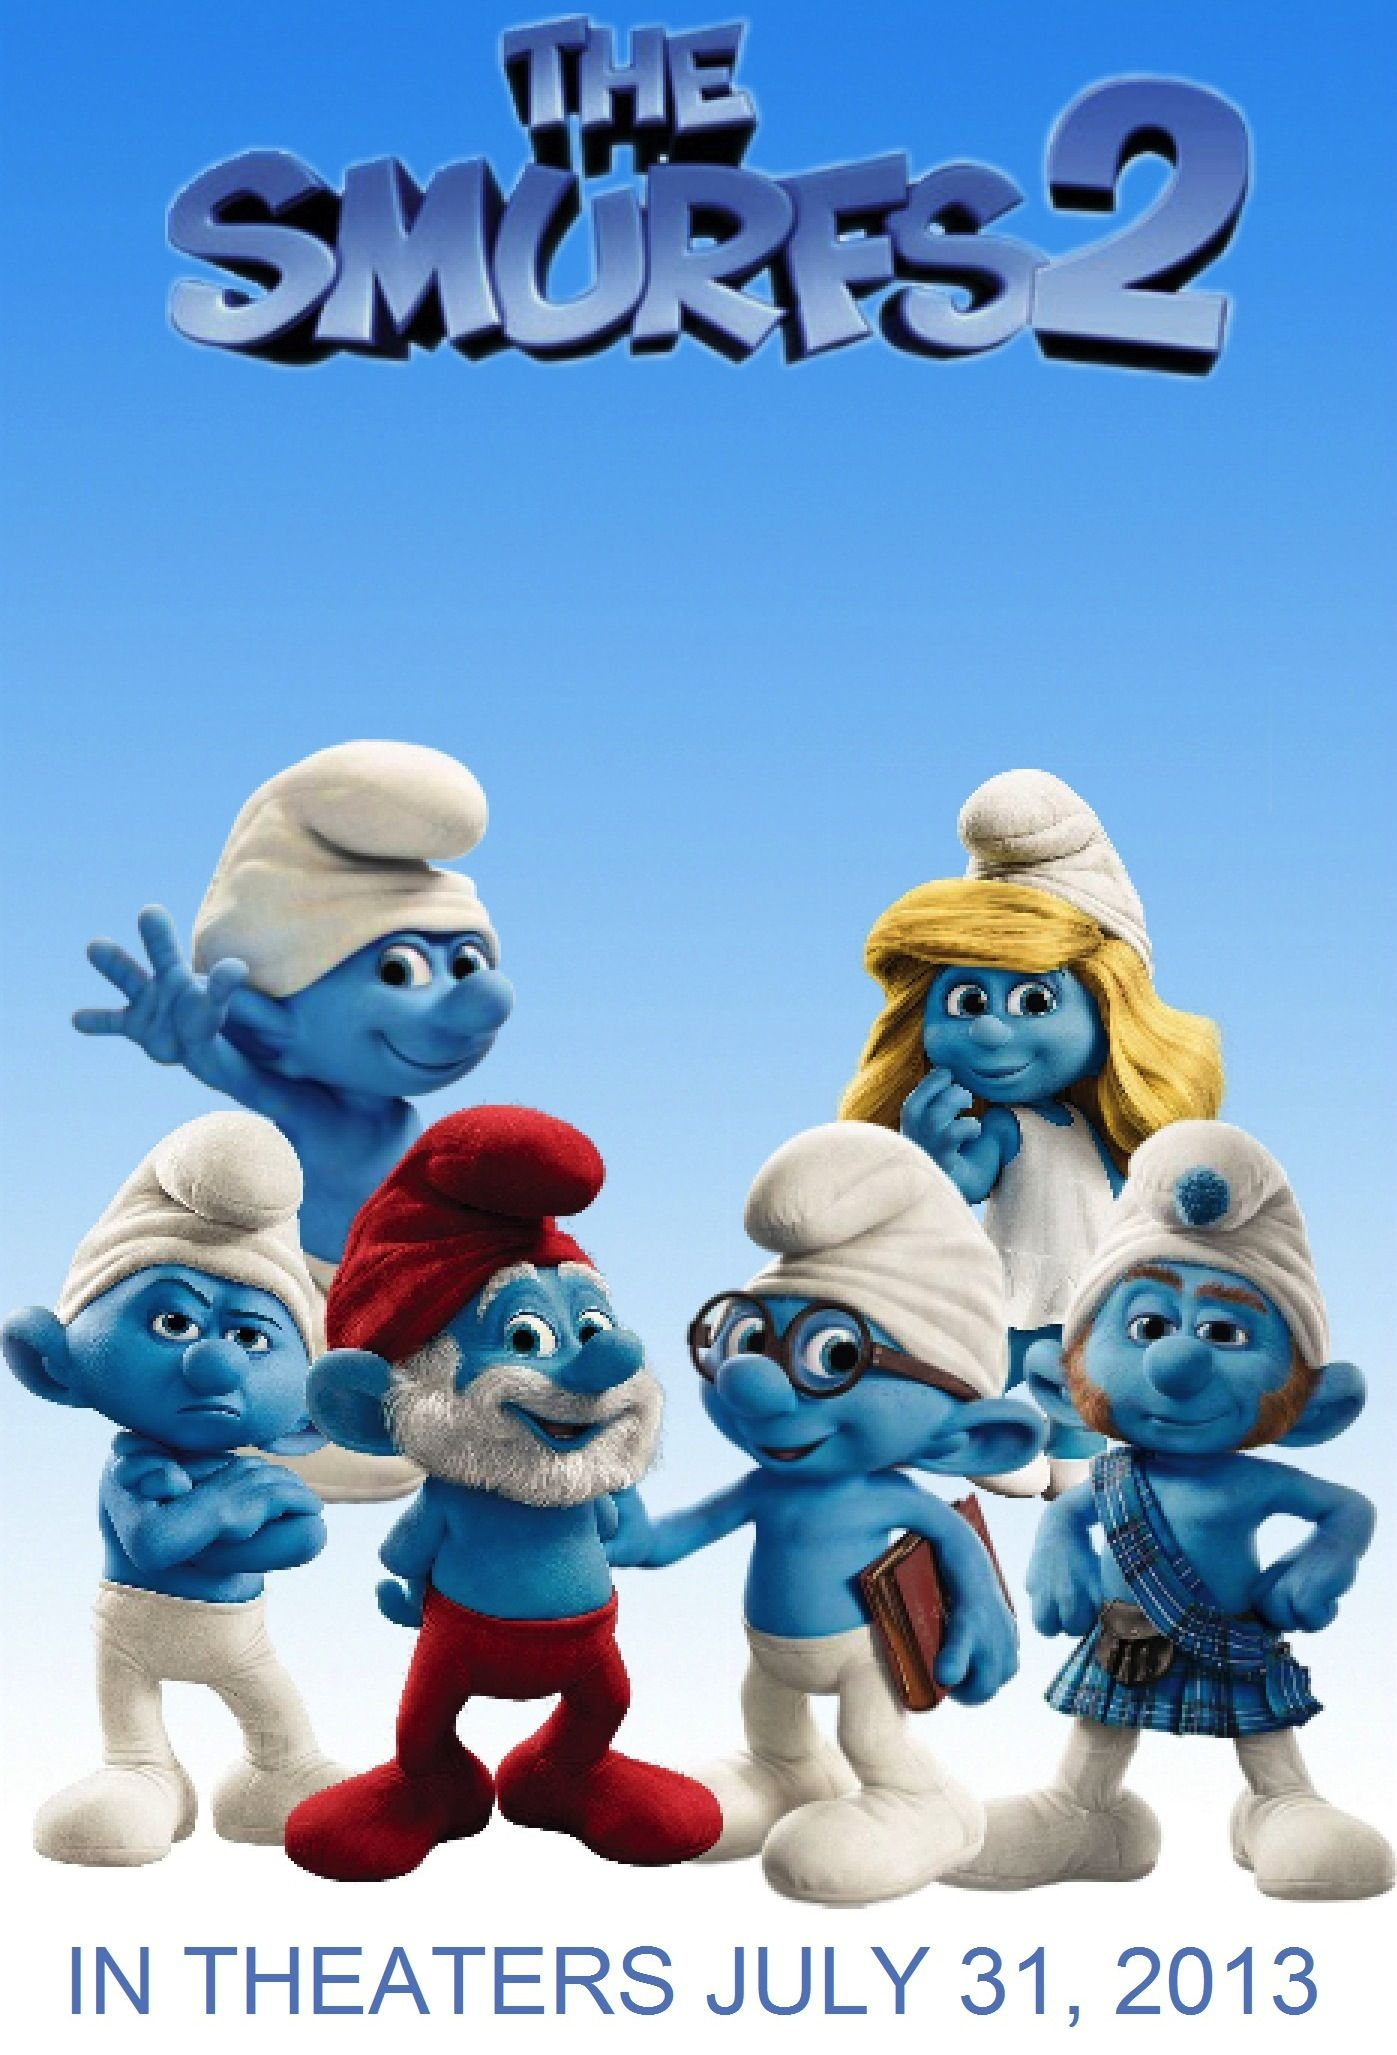 smurfs 2 poster - google search | favorite movies and tv shows